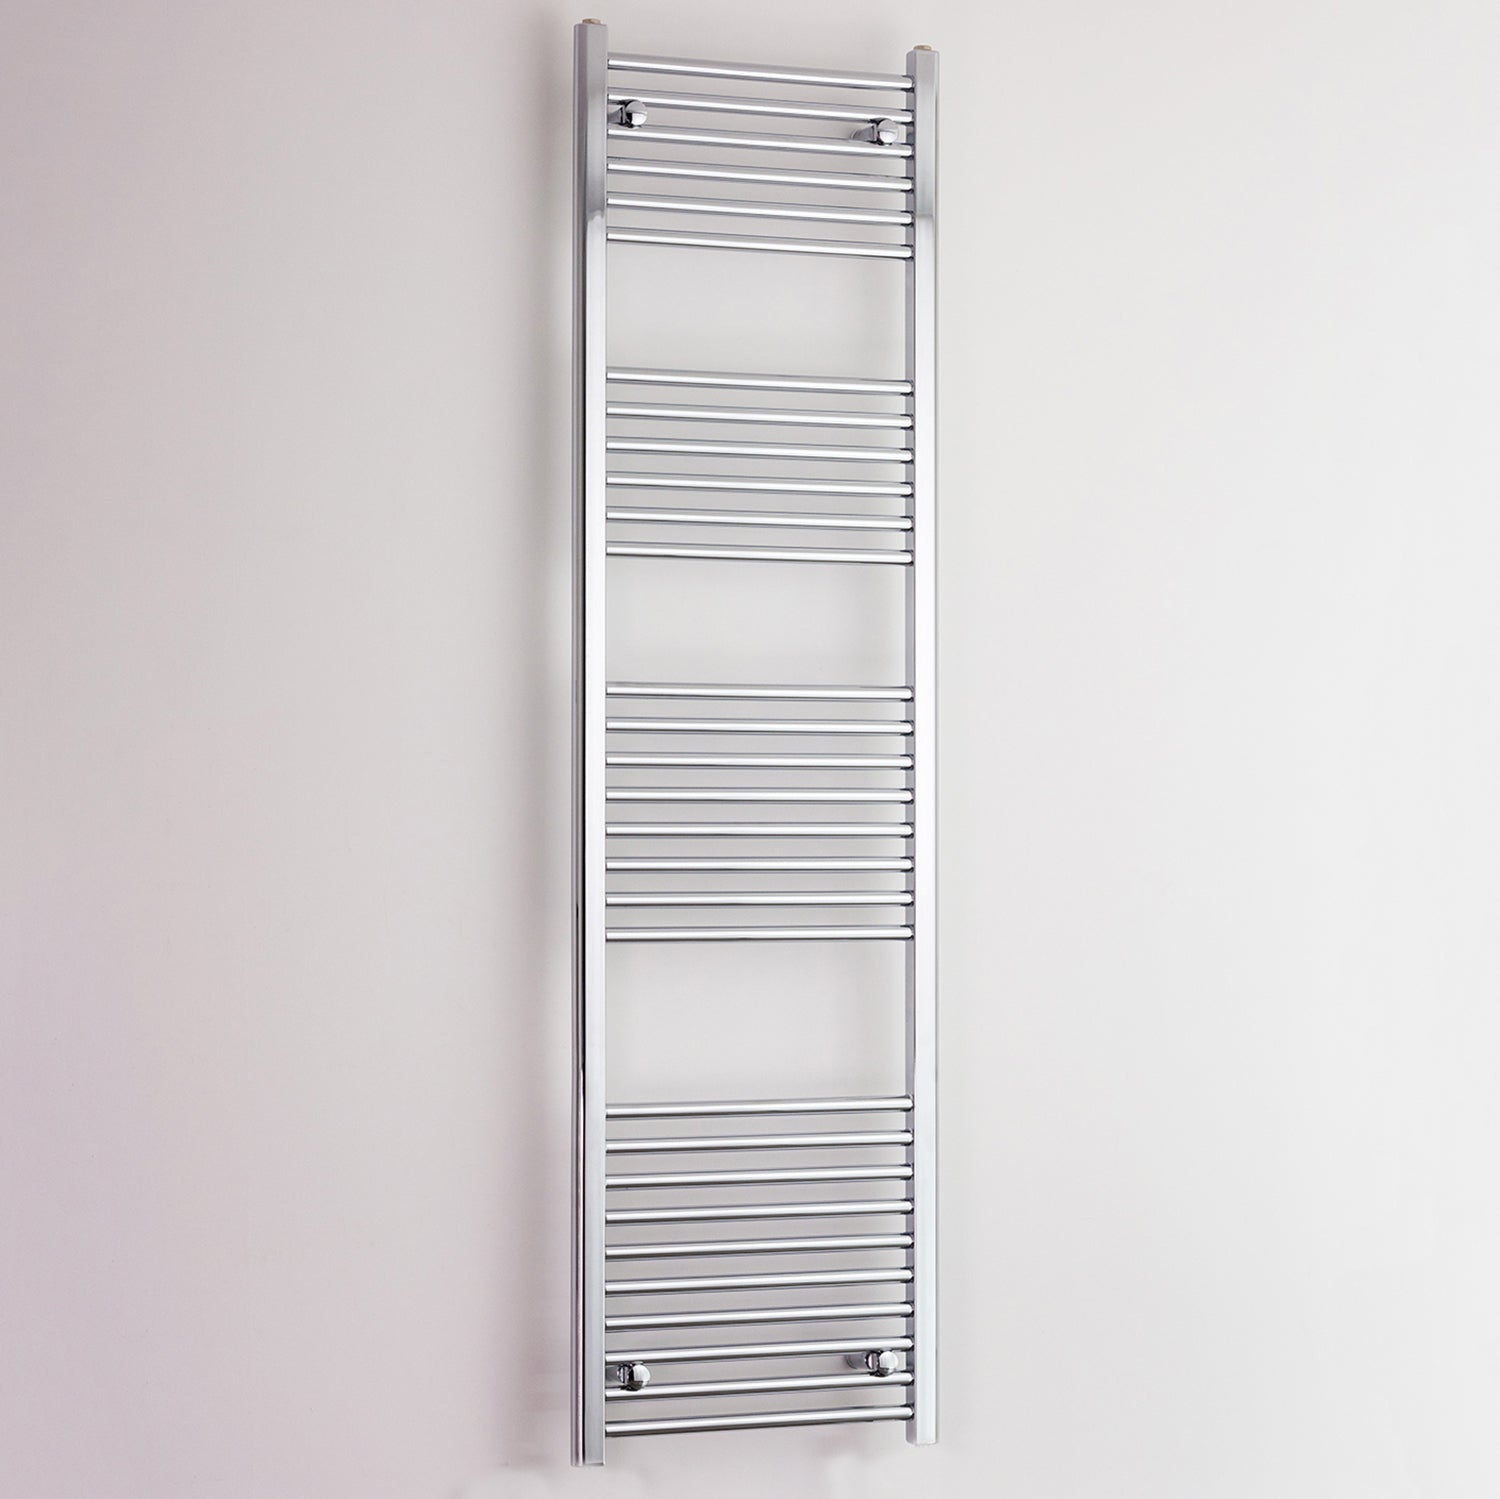 600mm Wide 1800mm High Curved Chrome Heated Towel Rail Radiator HTR,Towel Rail Only